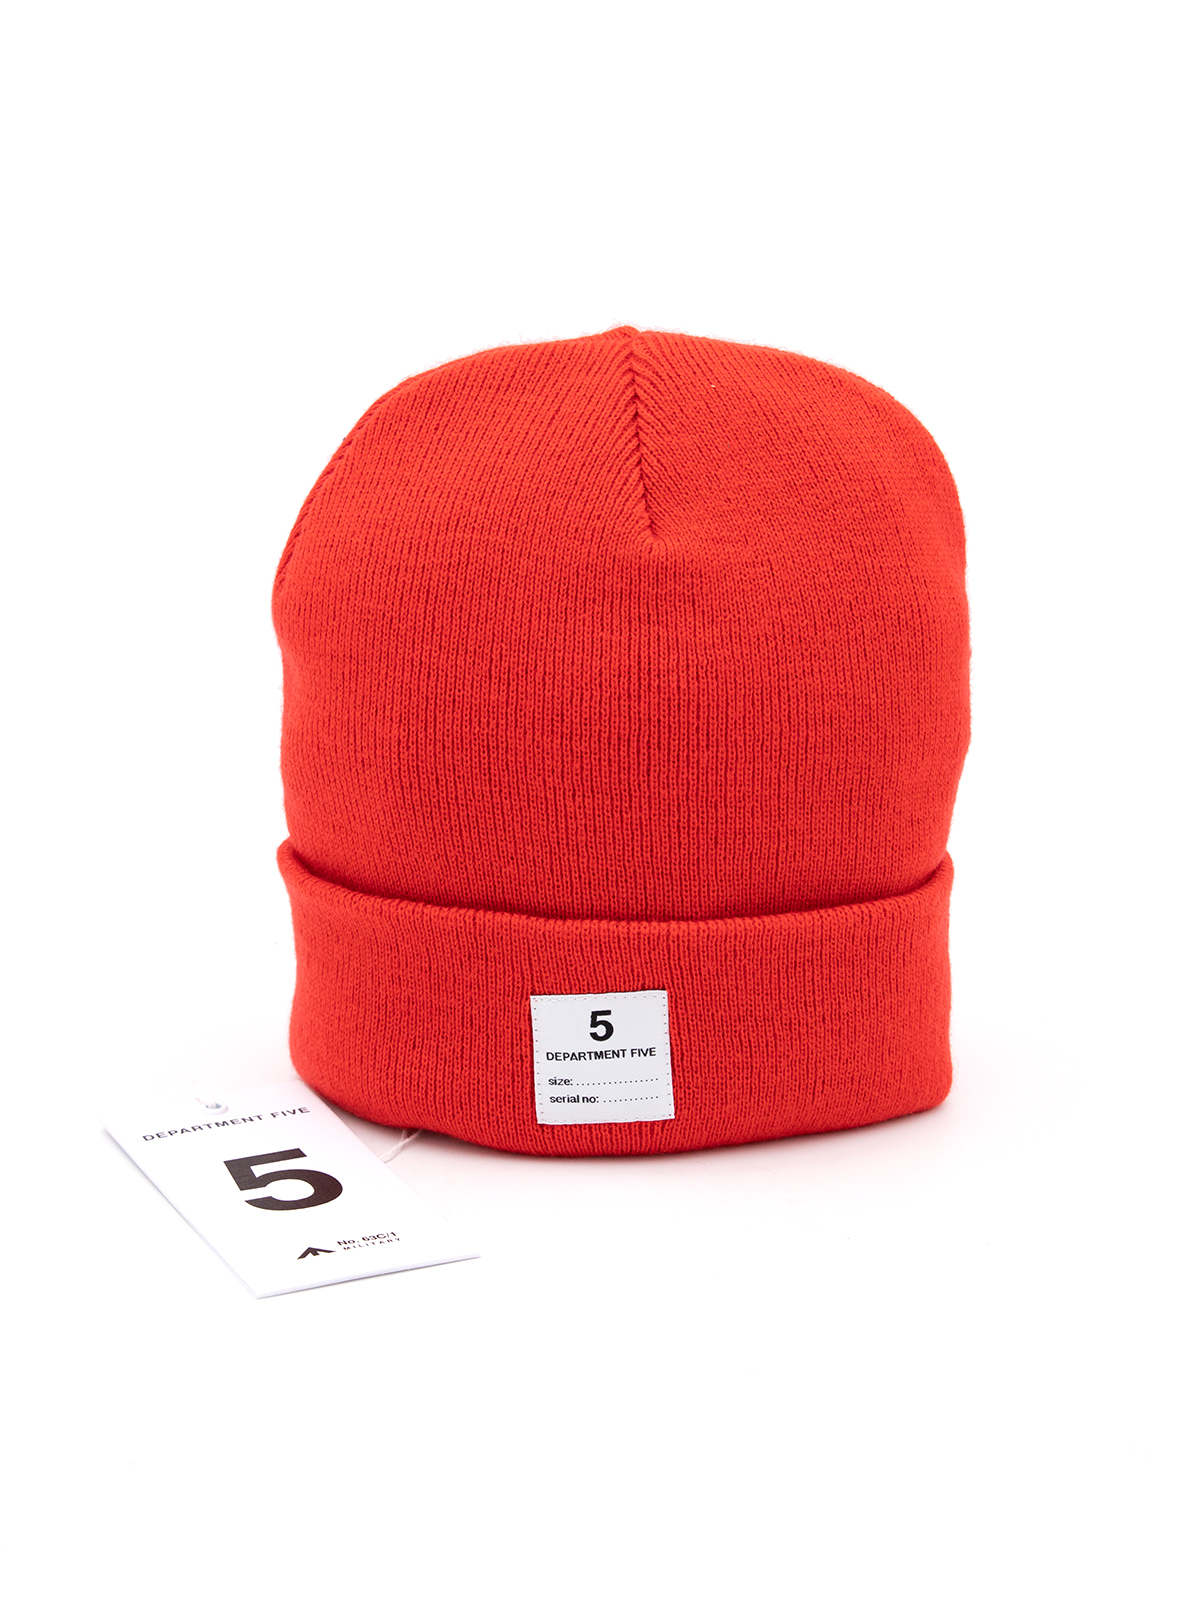 Department Five Cappello U19A10 FF196 Prym